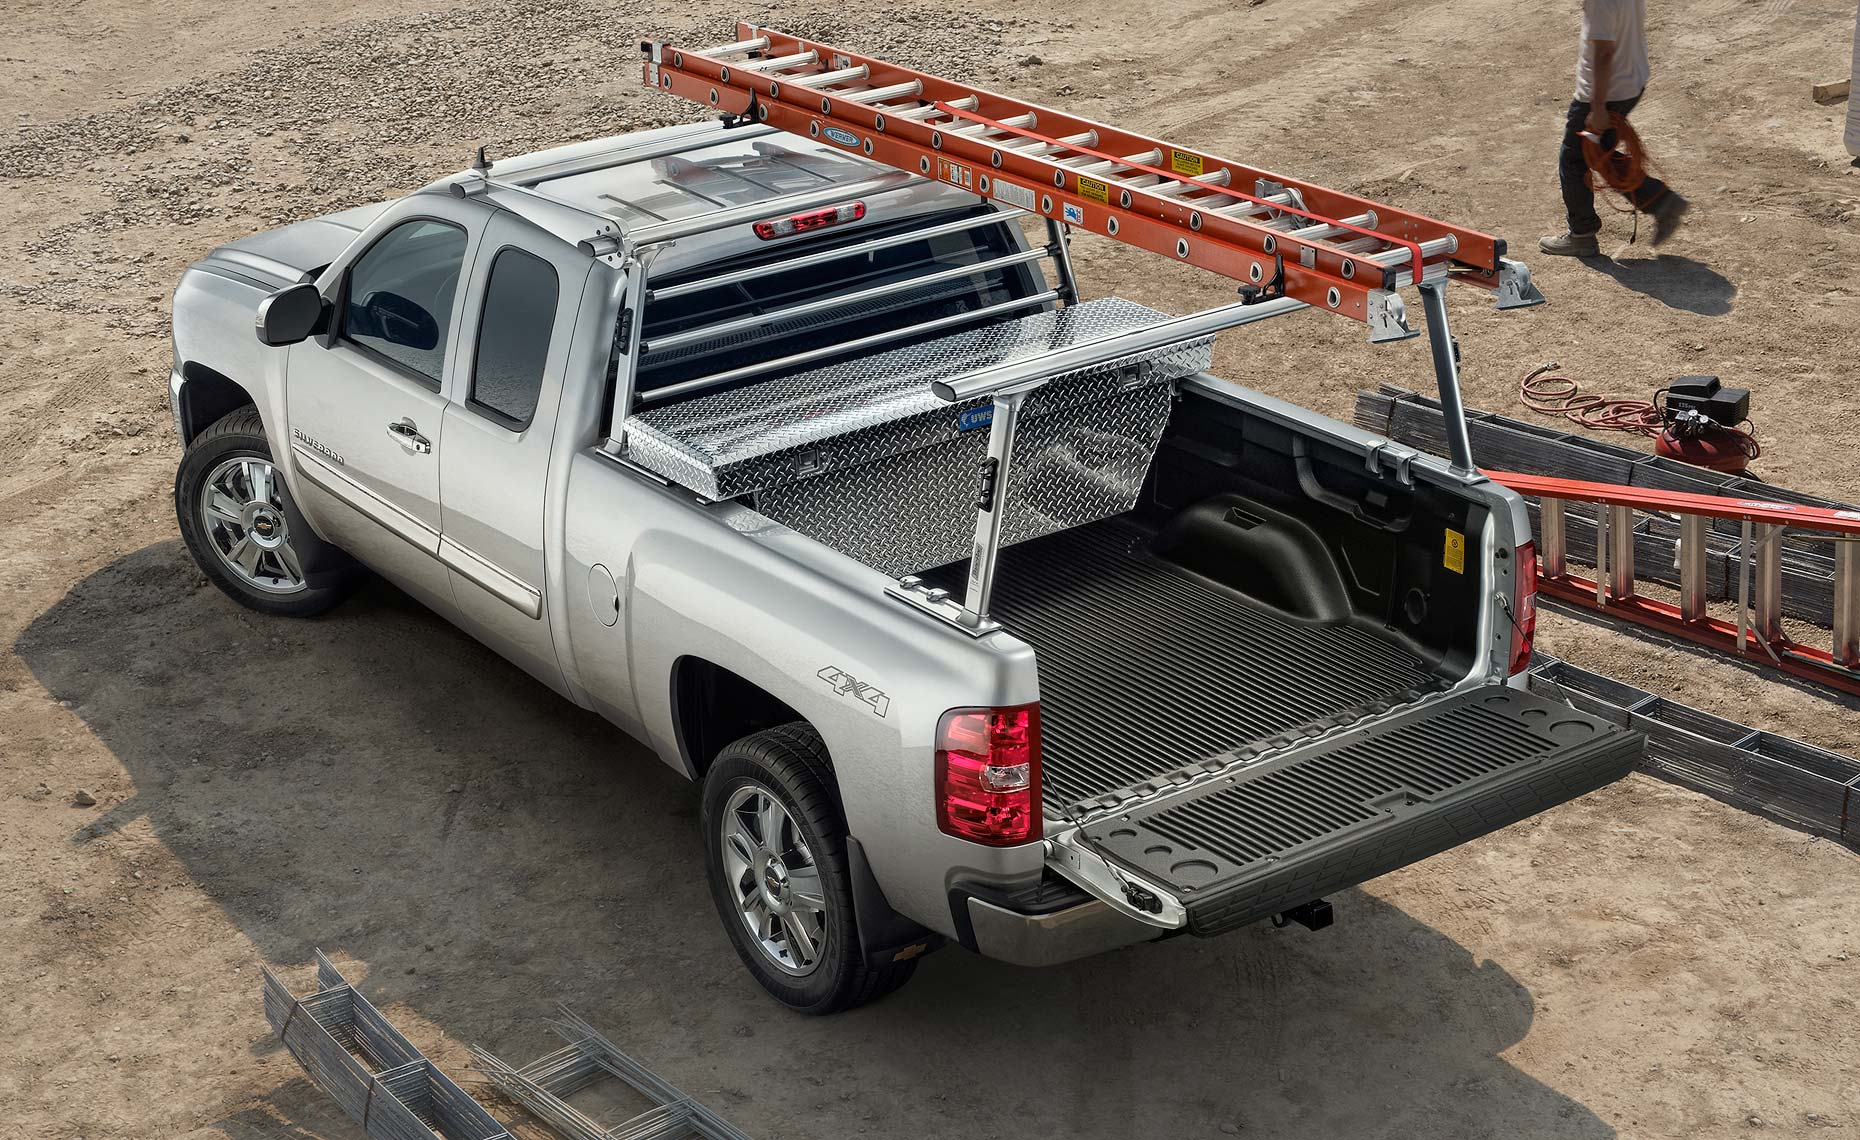 2013 chevy silverado-extended-ladders-work site.jpg